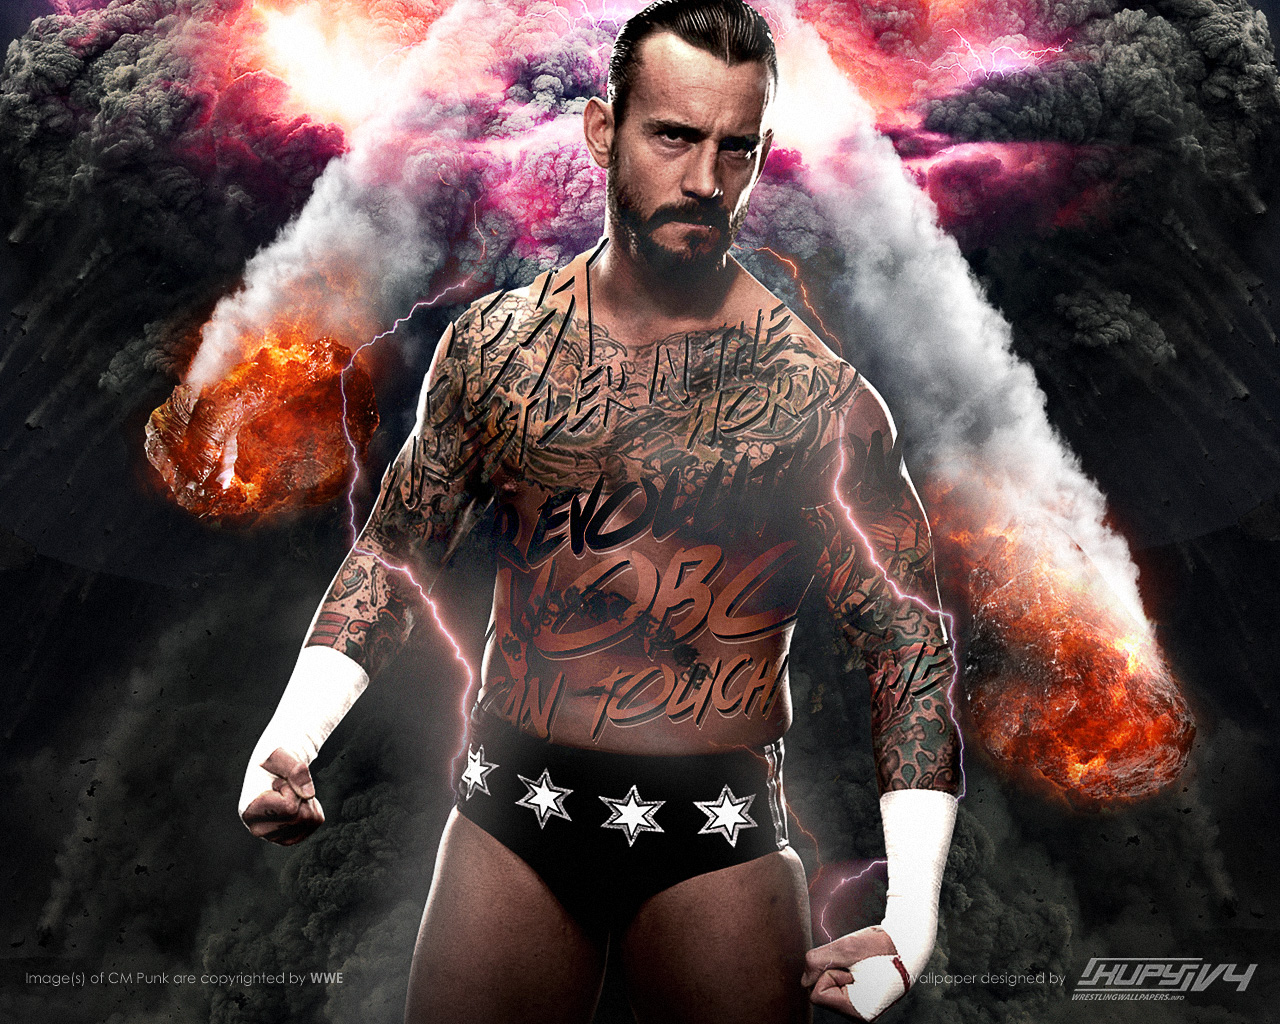 Kupywrestlingwallpapersfo the newest wrestling wallpapers on 12801024 voltagebd Choice Image